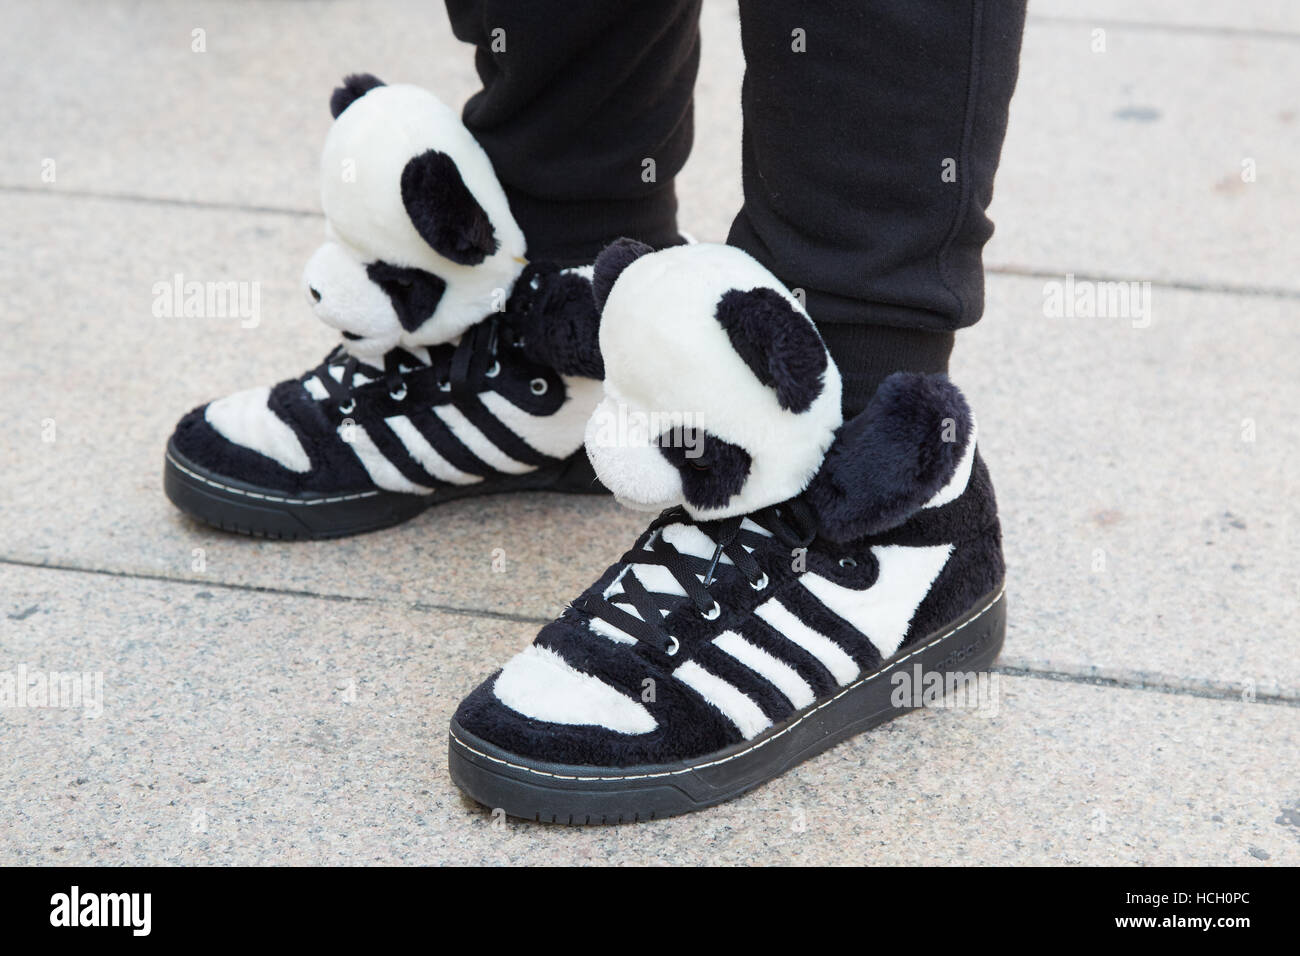 magasin en ligne ad78f 53a37 Man with panda bear puppet Adidas shoes before Cristiano ...